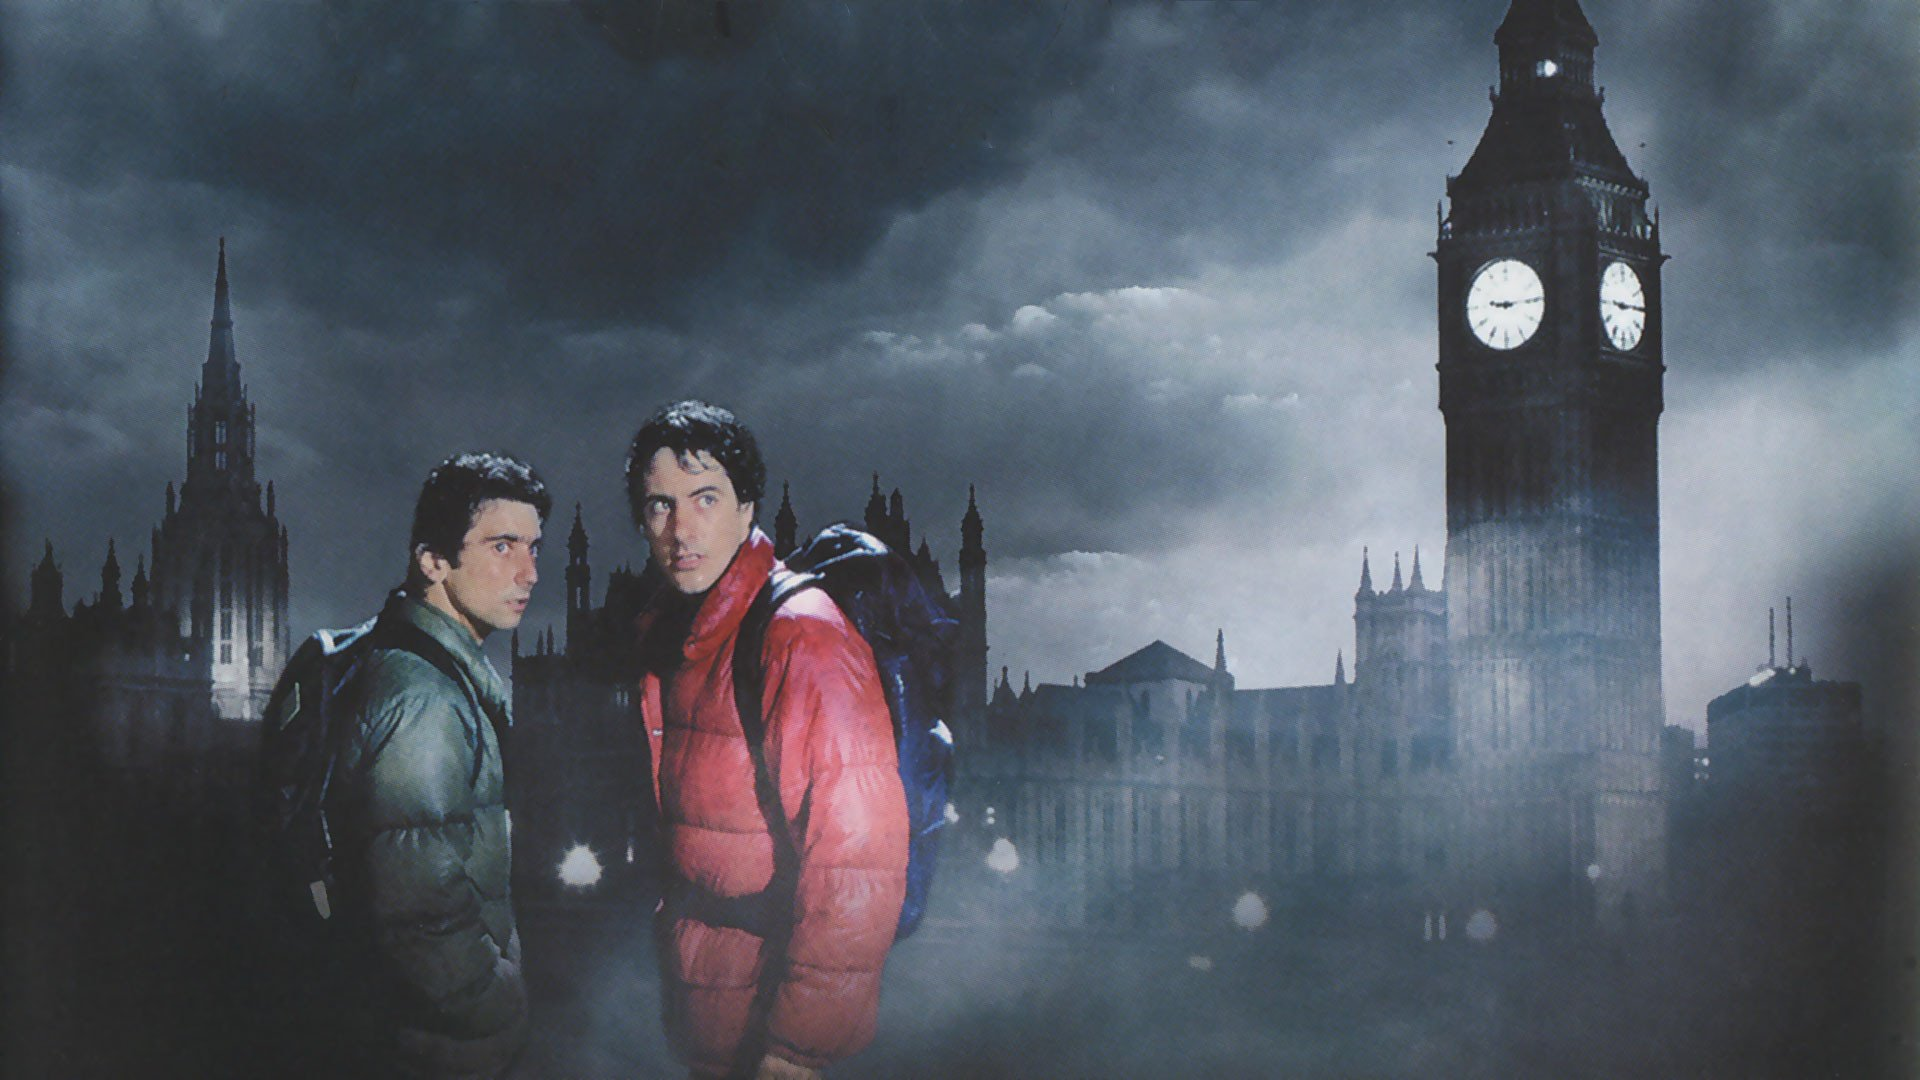 11 An American Werewolf In London Hd Wallpapers Background